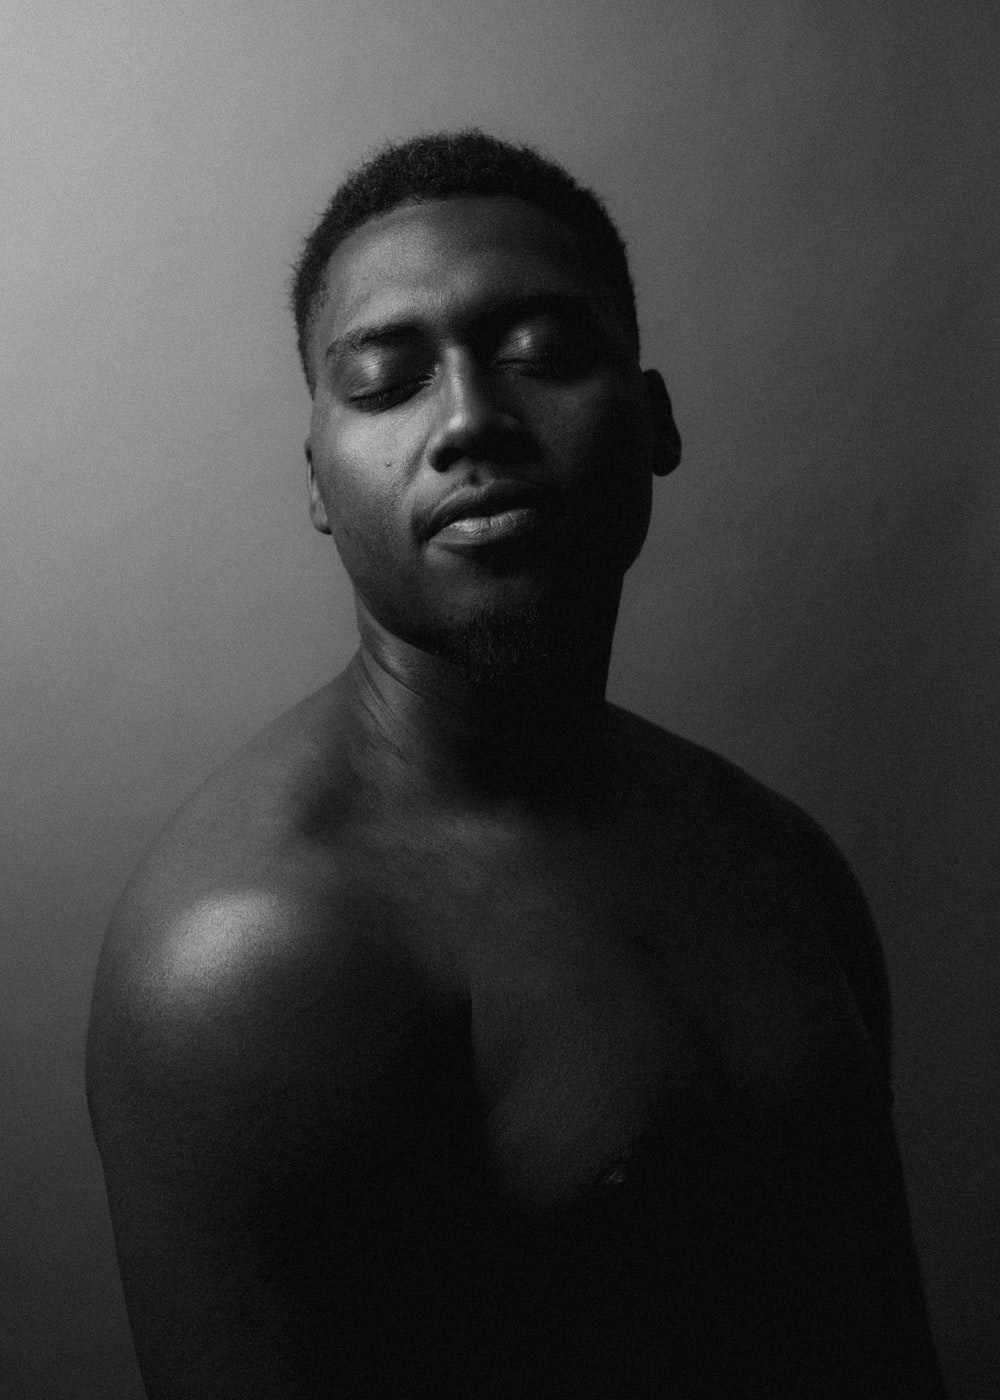 topless man in grayscale photography